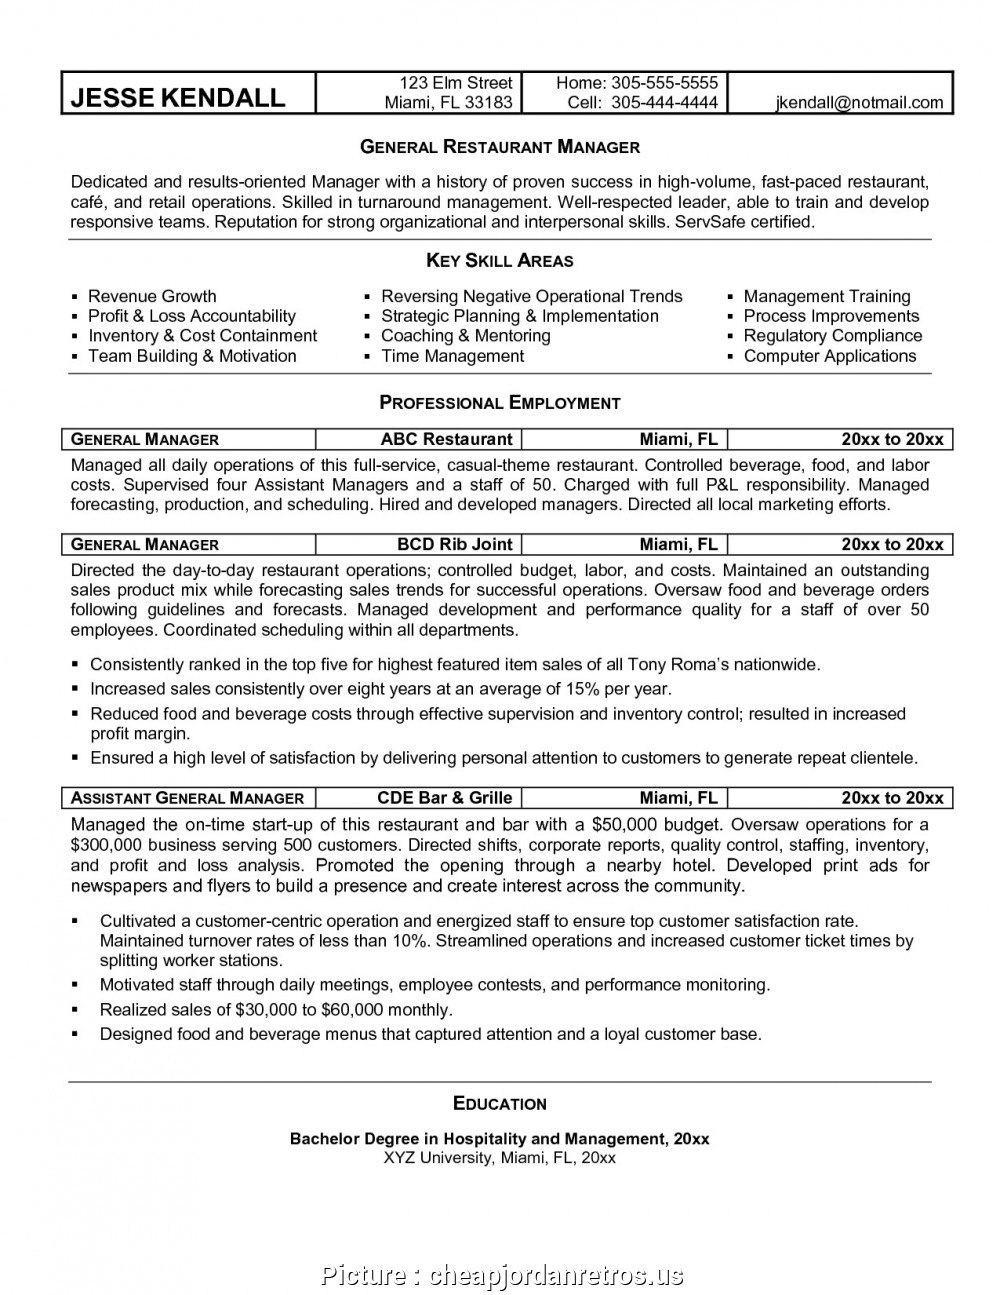 Hospitality Business Plan Template Restaurant Excele Resume Pertaining To University Of Miami Powerpoint Template Resume Examples Manager Resume Server Resume